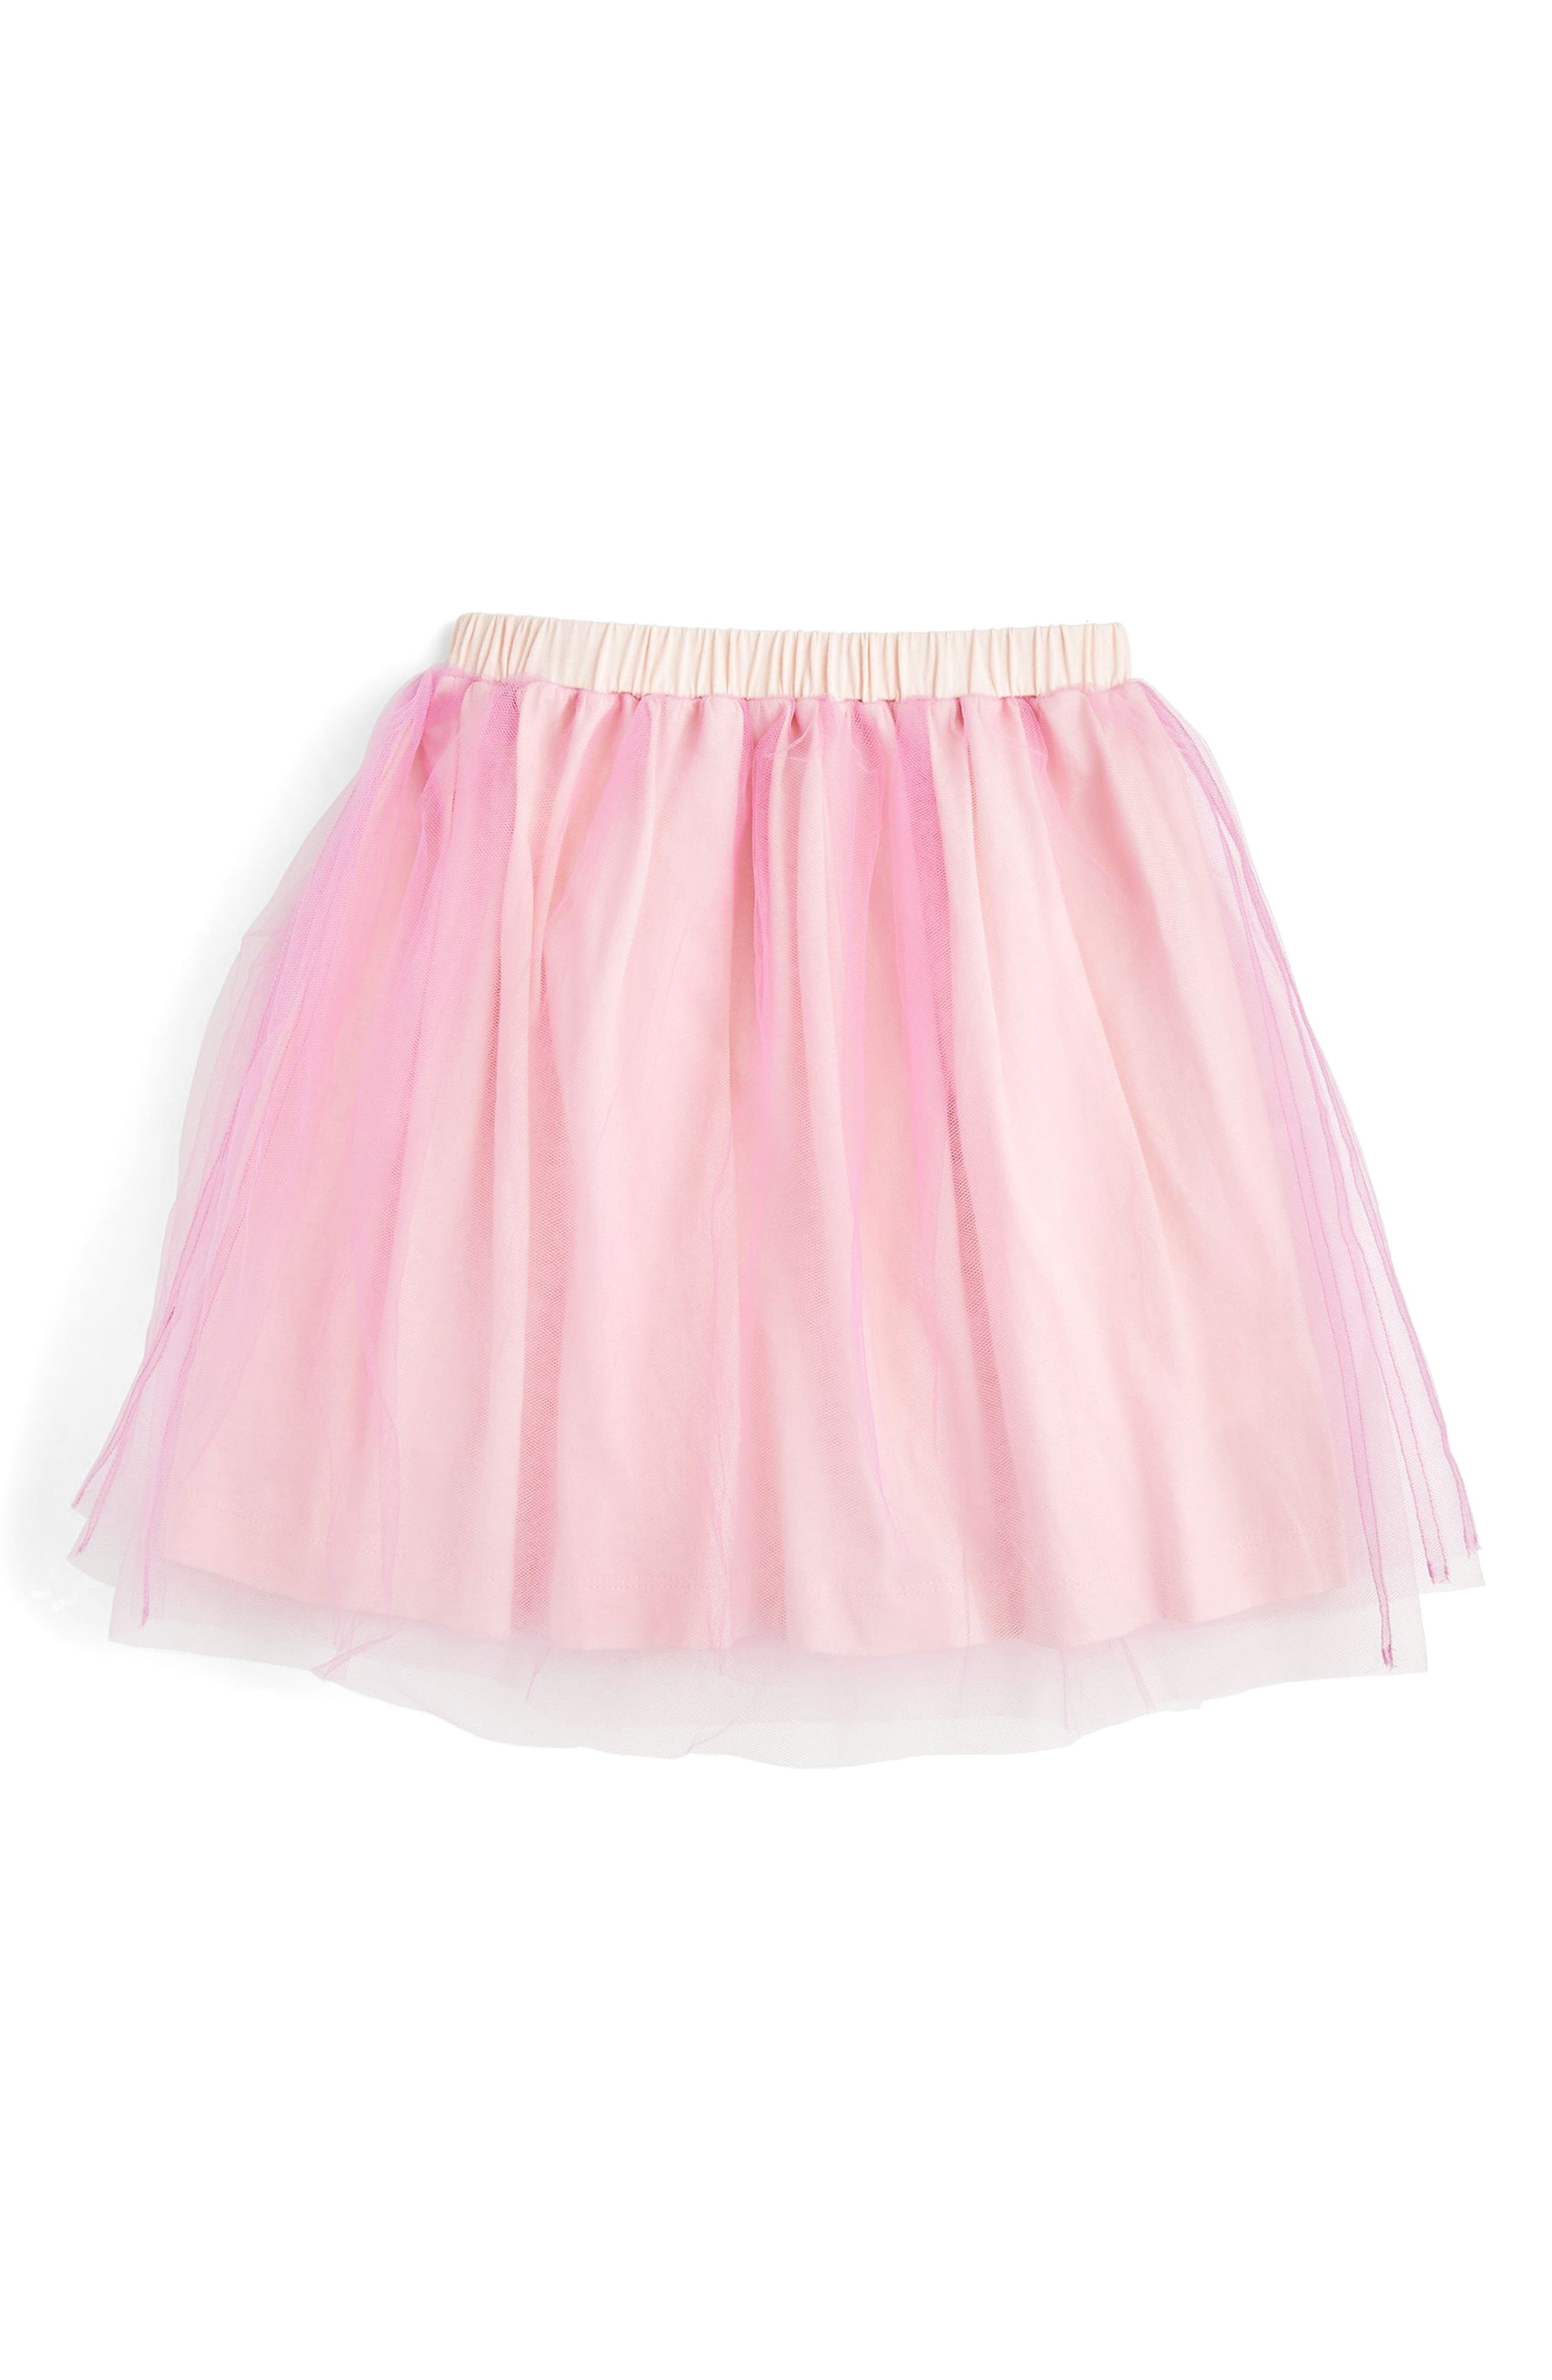 CREWCUTS BY J.CREW Tulle Skirt, Main, color, 650